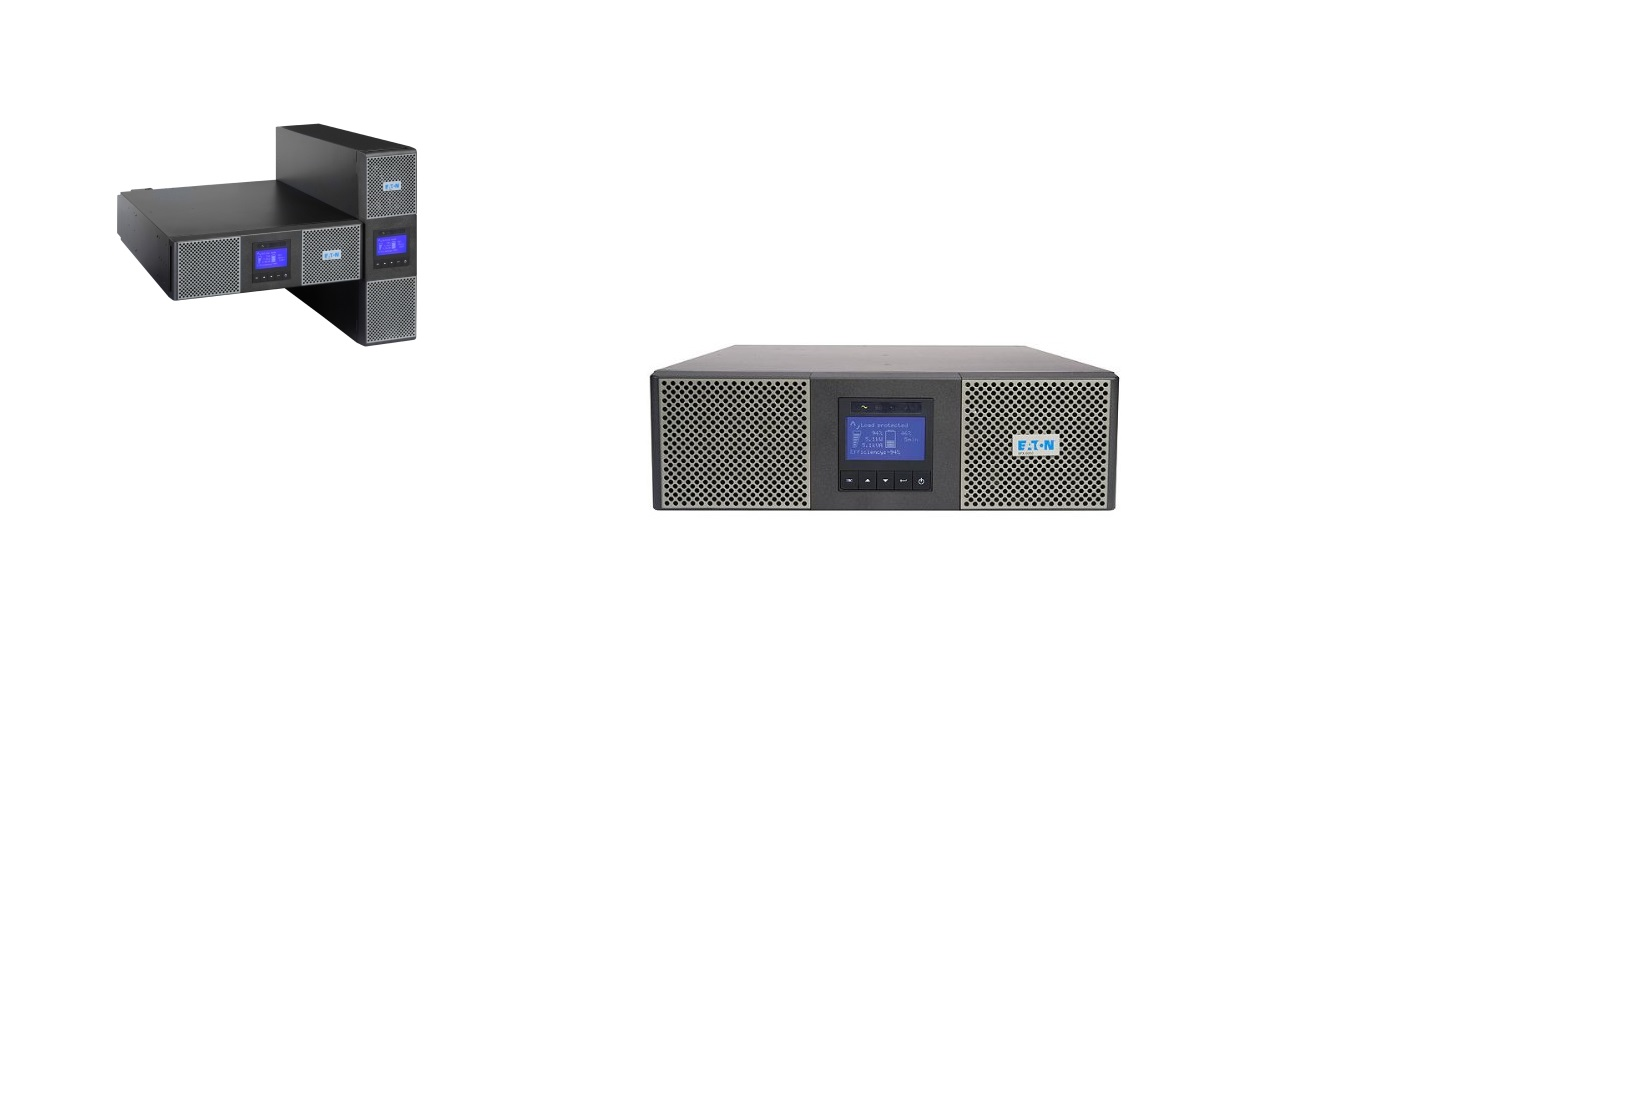 Eaton Power Quality 9PX 6kVA 5.4kW 200-240V Double-Conversion OnLine Rack Mountable Tower UPS 9PX6K